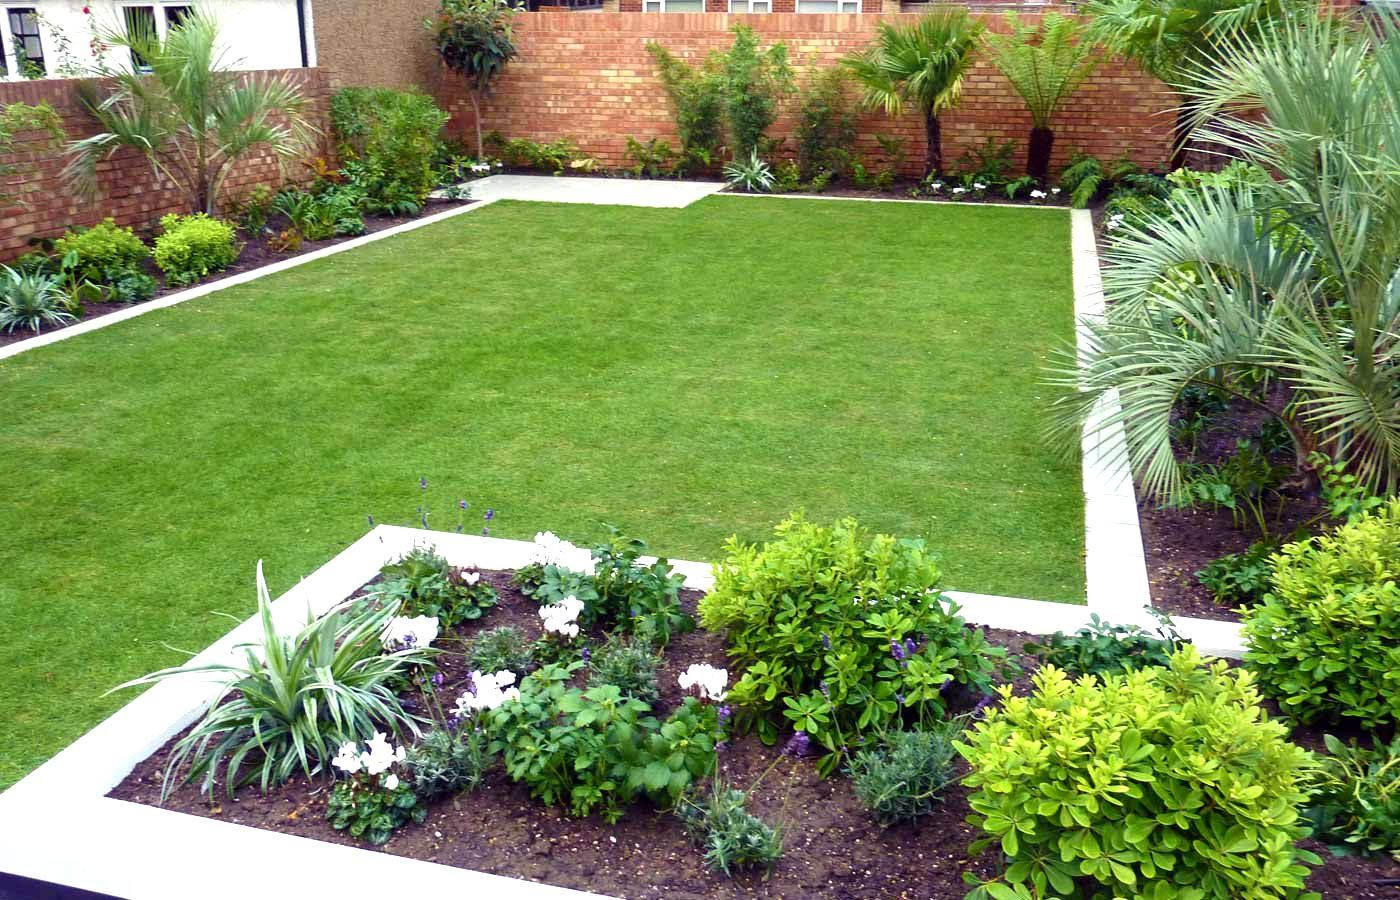 Simple garden designs no fret small garden design for Simple home garden design